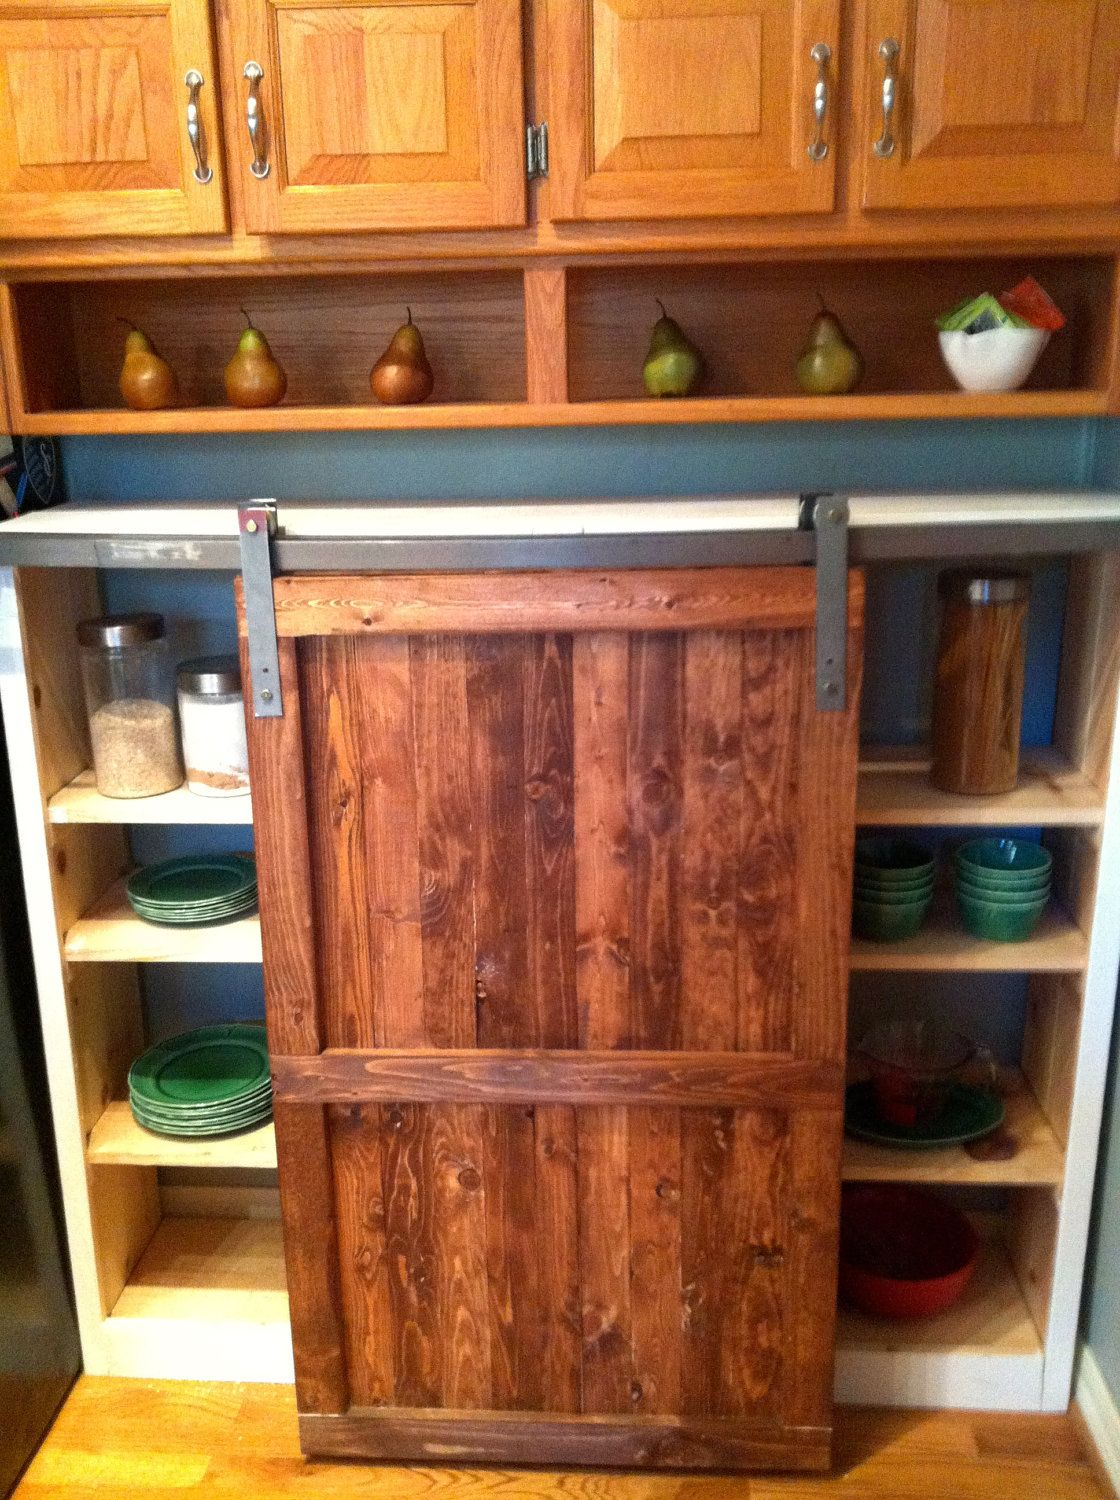 Distressed Wood Kitchen Cabinets Pre-rinse Faucet Barn Door Cabinet Custom